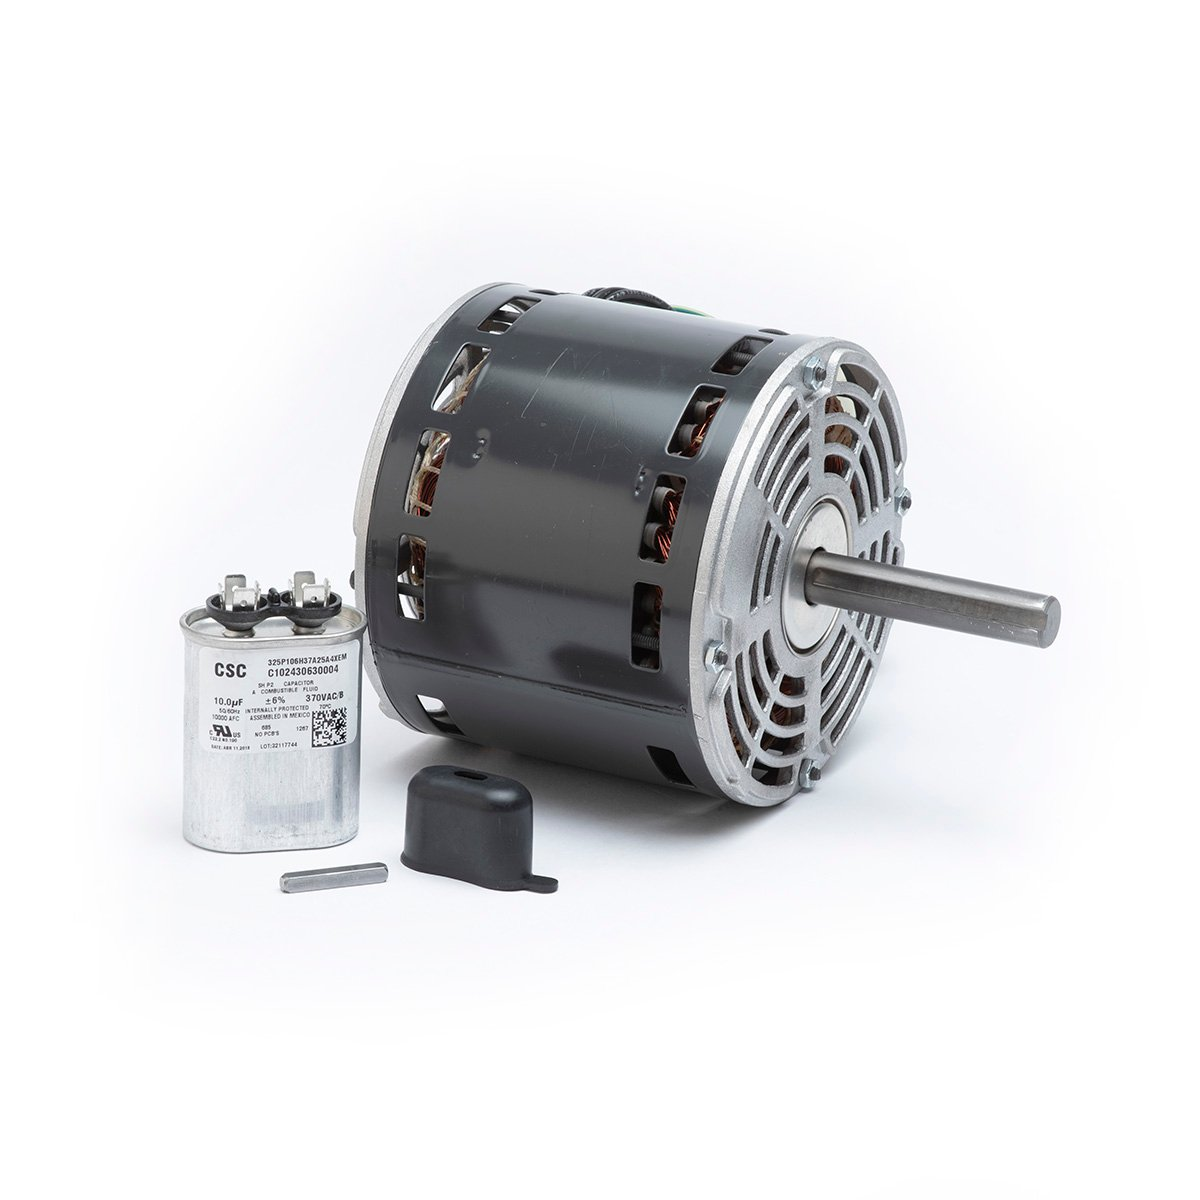 Motor Kit, 1/2HP, ACB, 2430